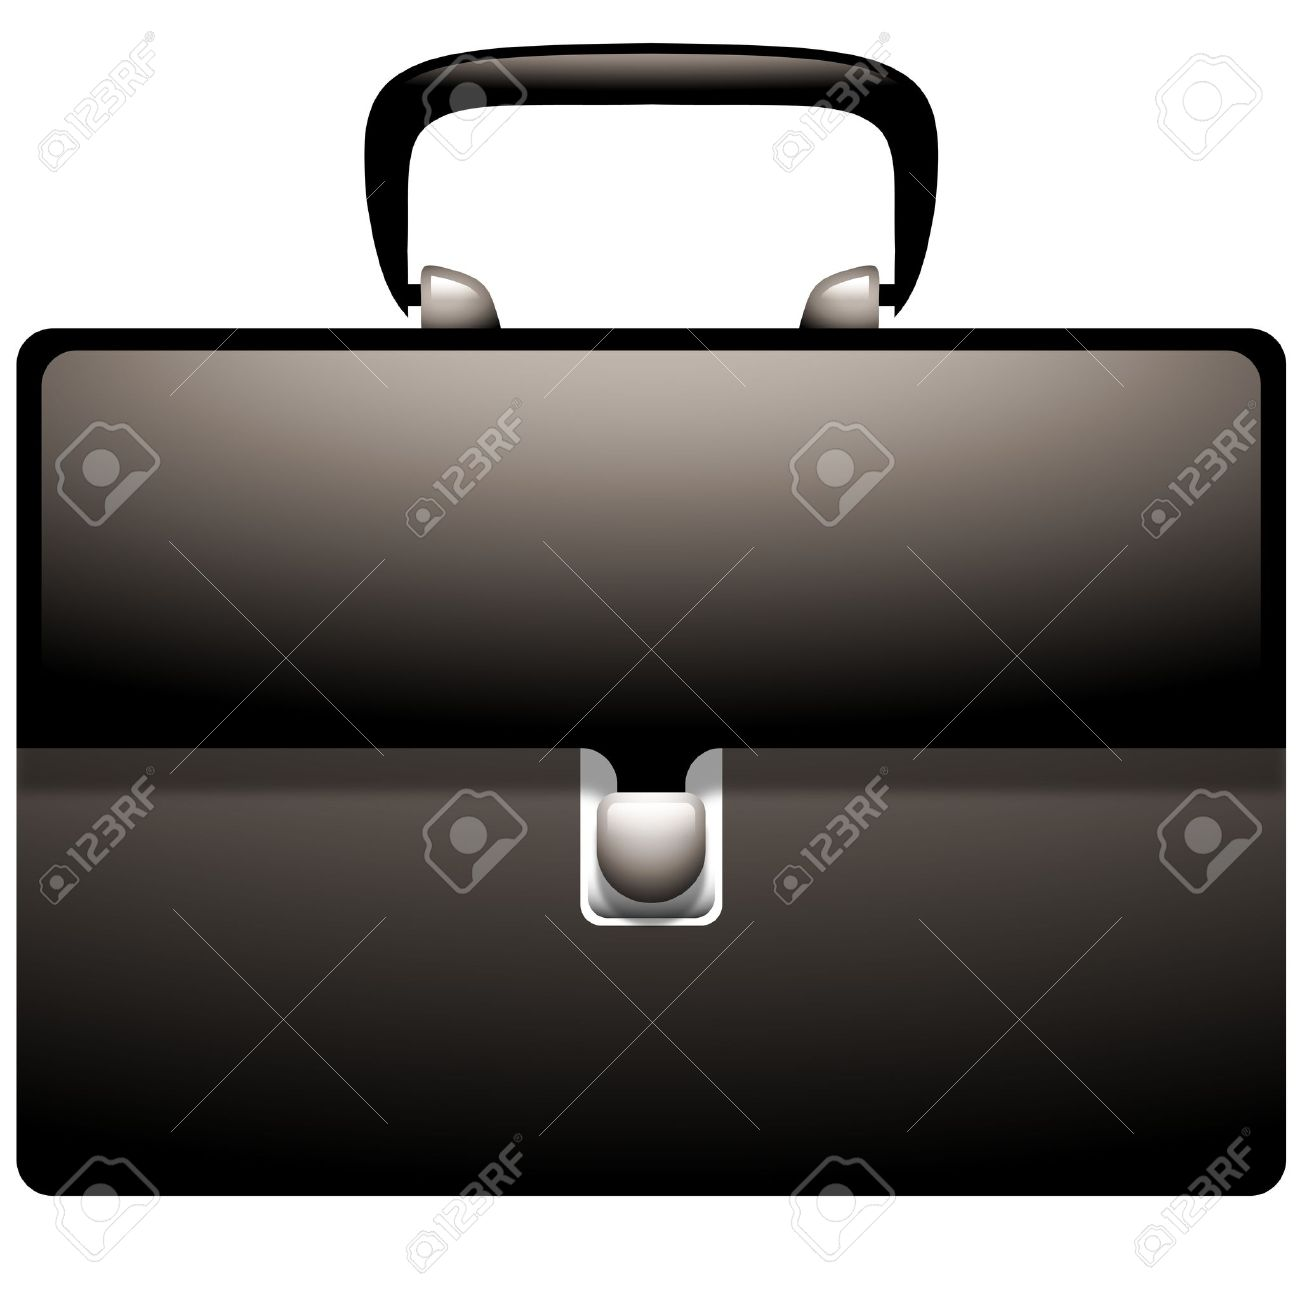 Attache Case Icon Royalty Free Cliparts, Vectors, And Stock.